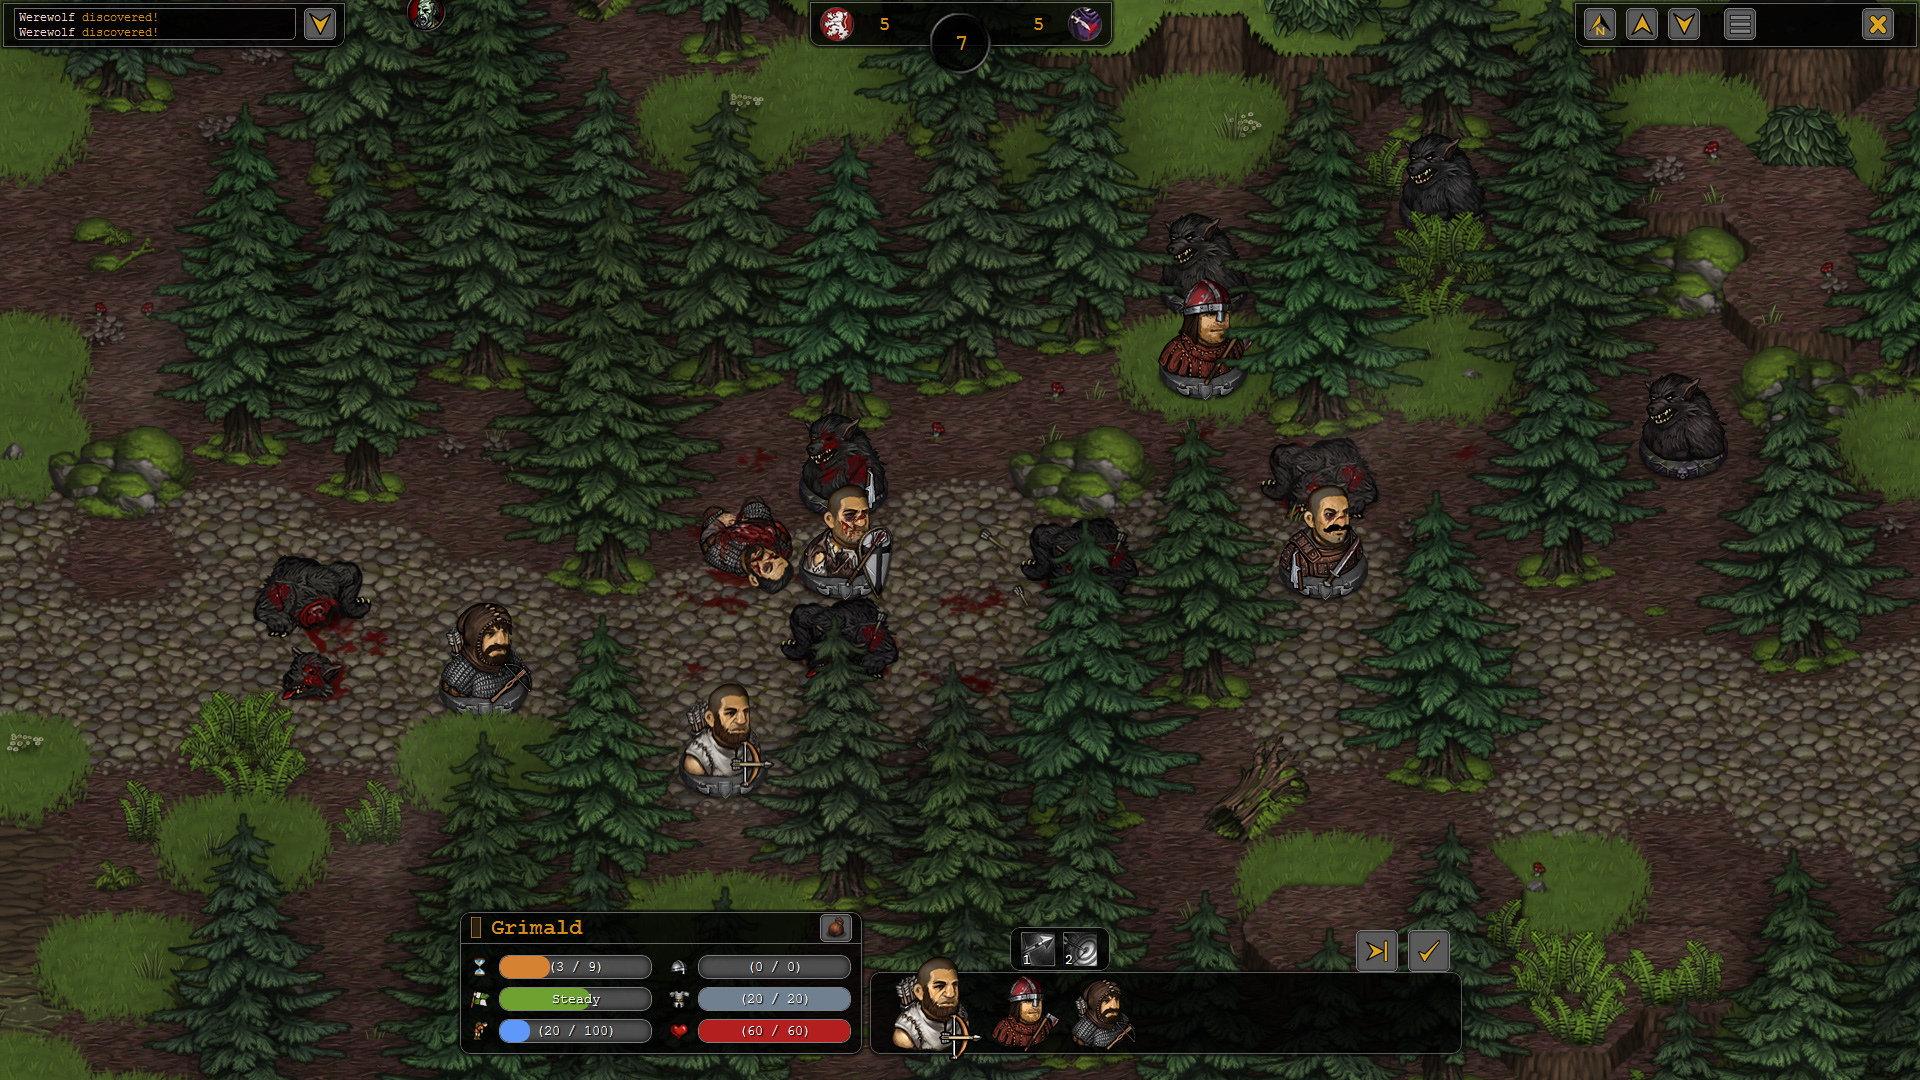 Battle Brothers - Jagged Alliance meets X-Com in gritty low